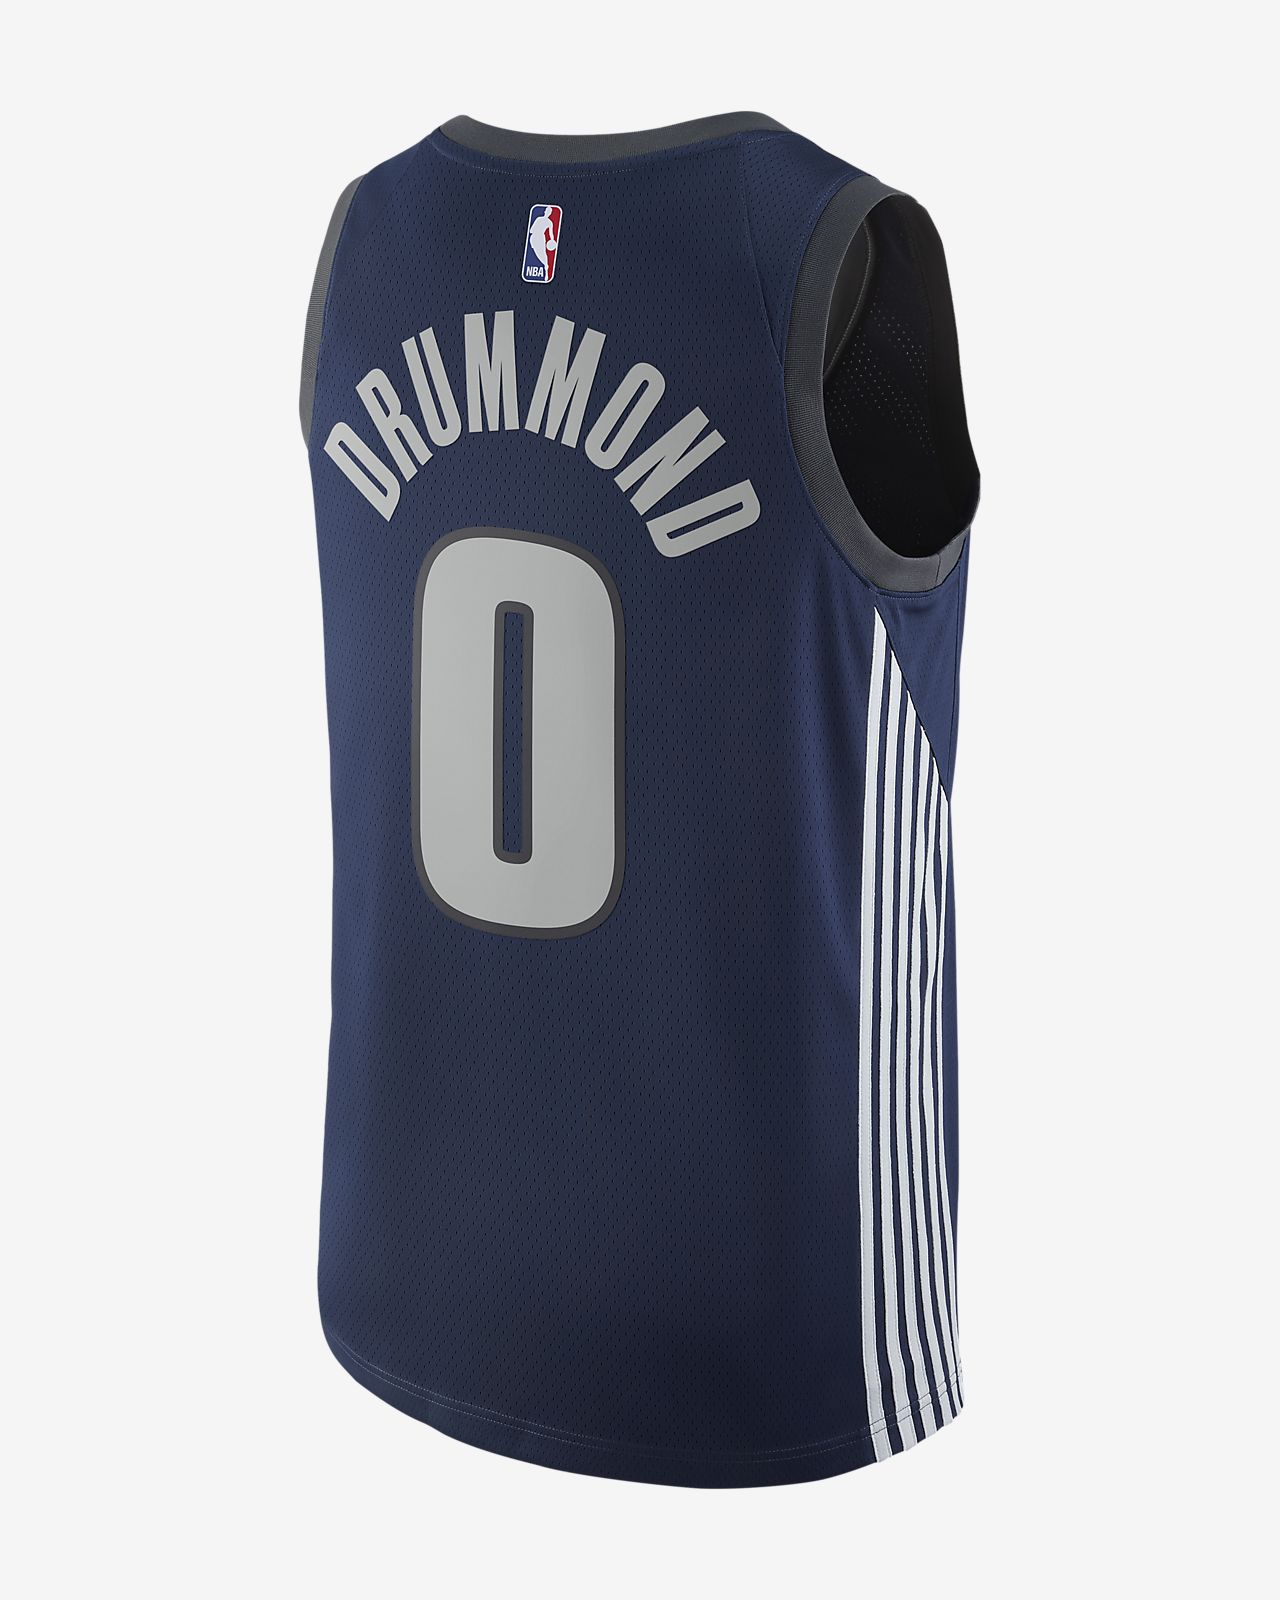 05b2722e877 ... Andre Drummond City Edition Swingman Jersey (Detroit Pistons) Men s Nike  NBA Jersey